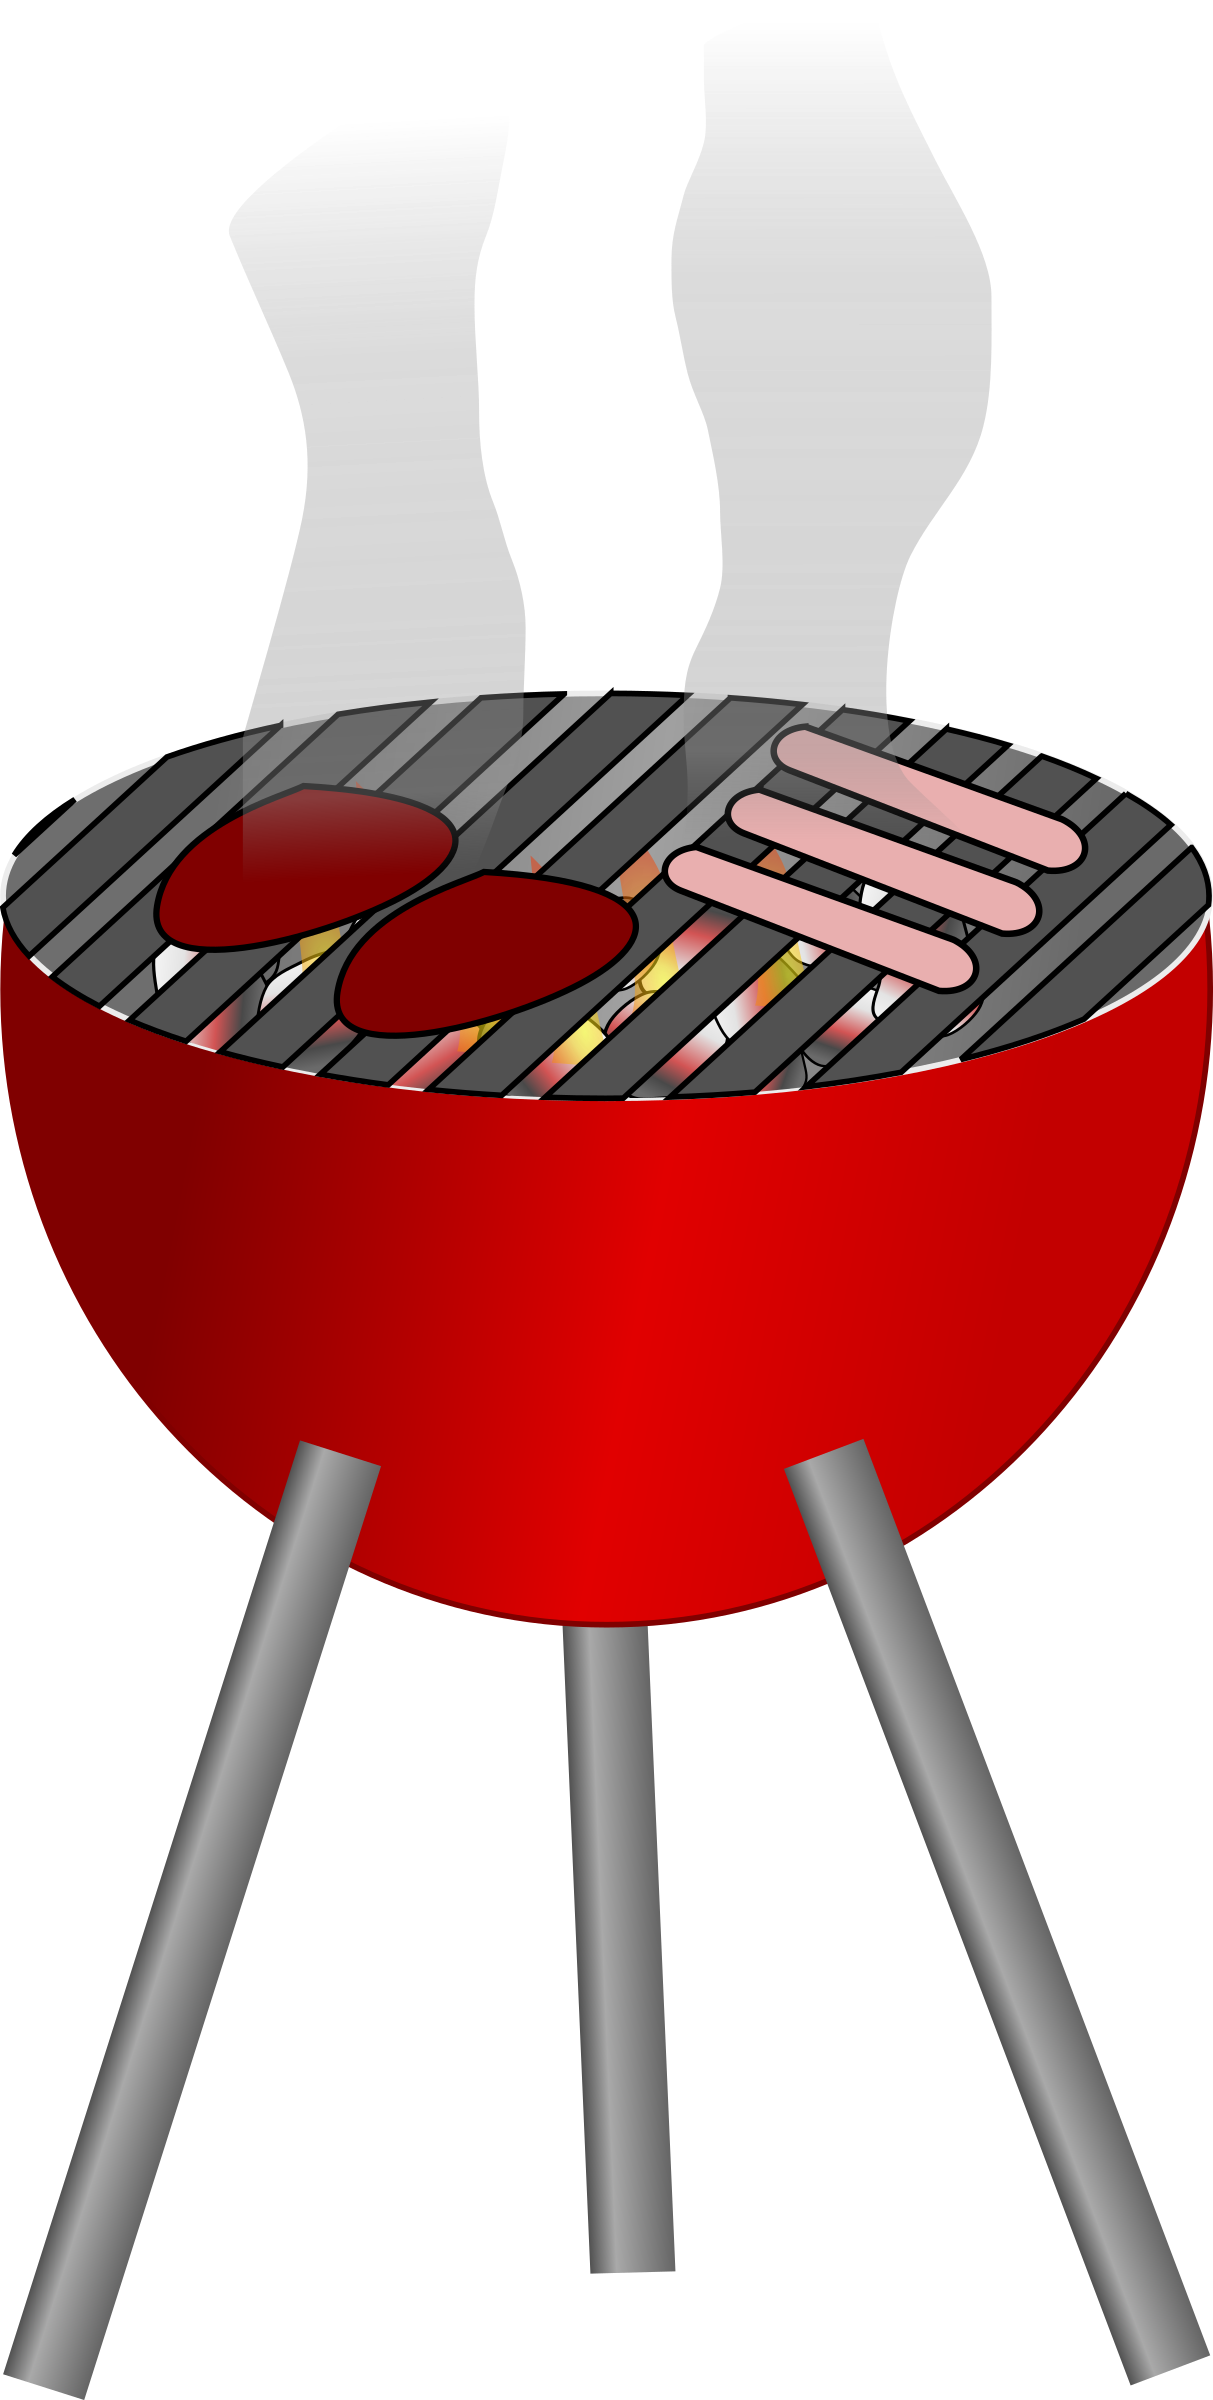 Barbecue clipart animated.